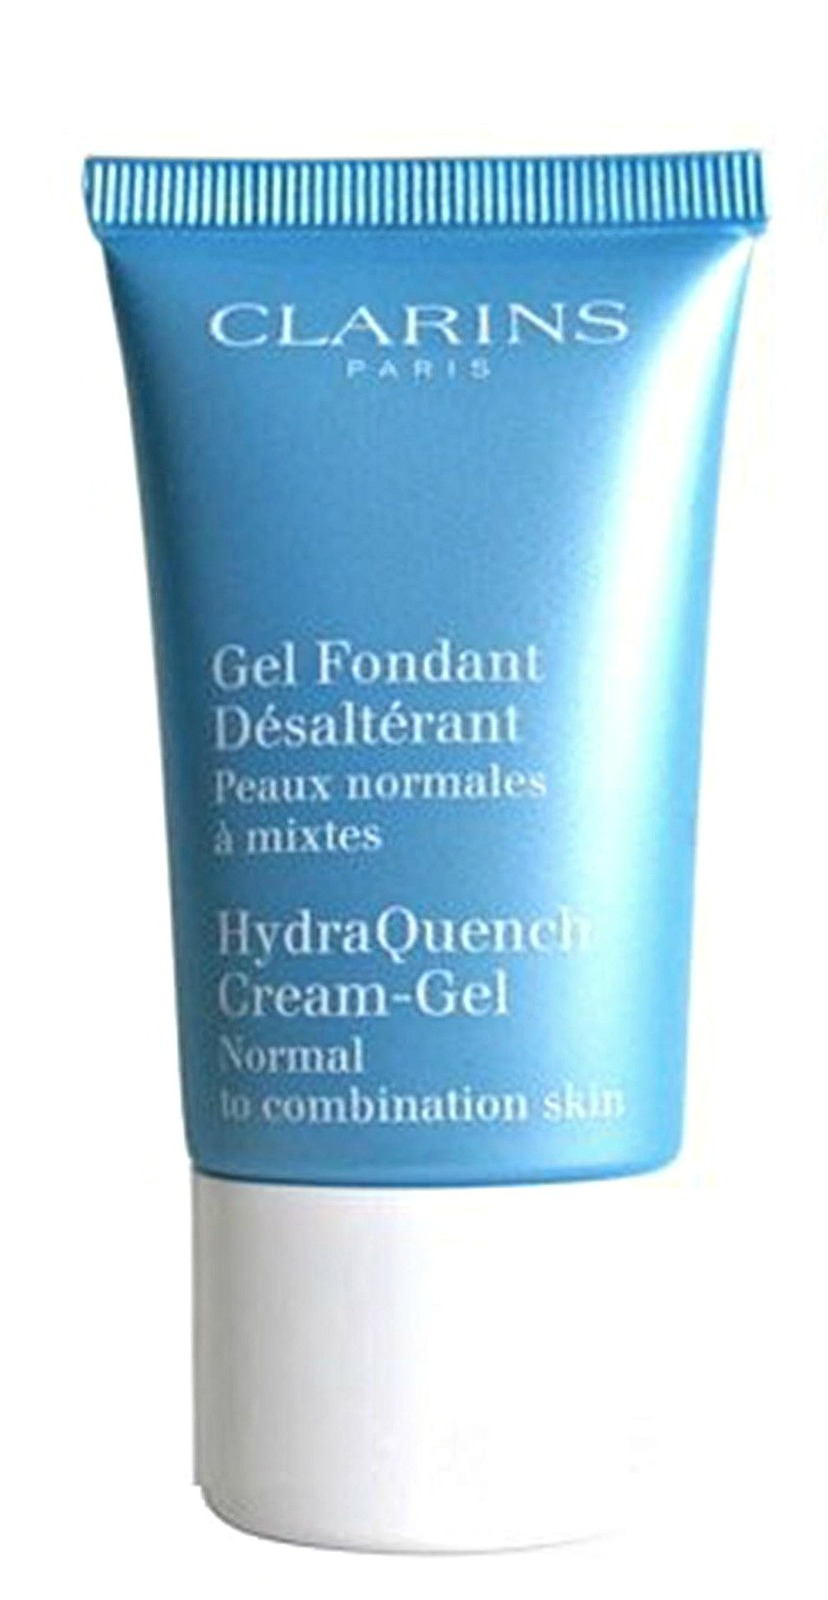 Clarins HydraQuench Cream-Gel for Normal/Combination Skin